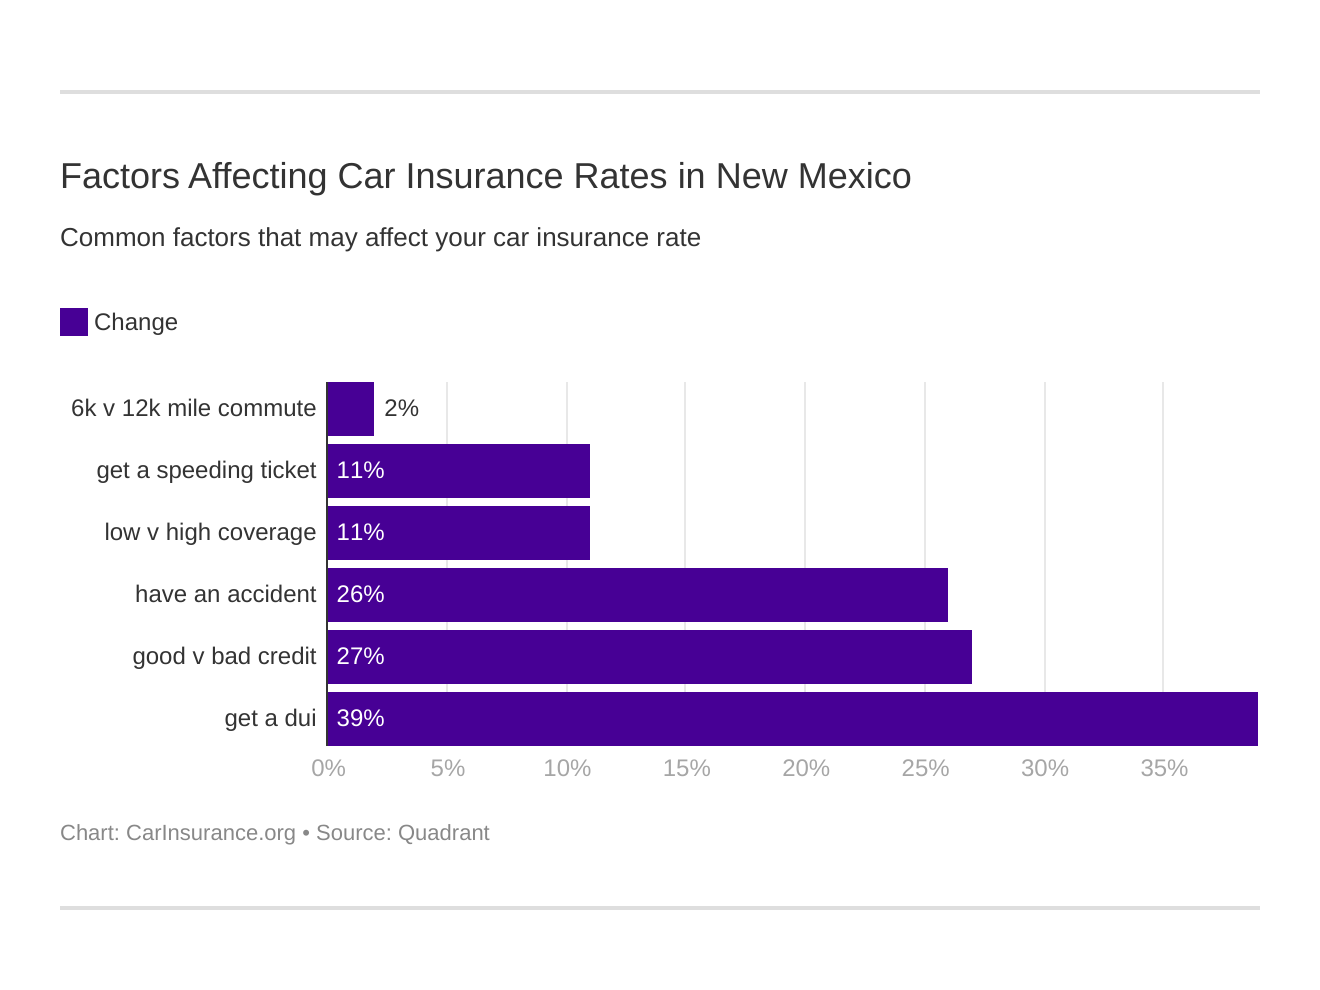 Factors Affecting Car Insurance Rates in New Mexico